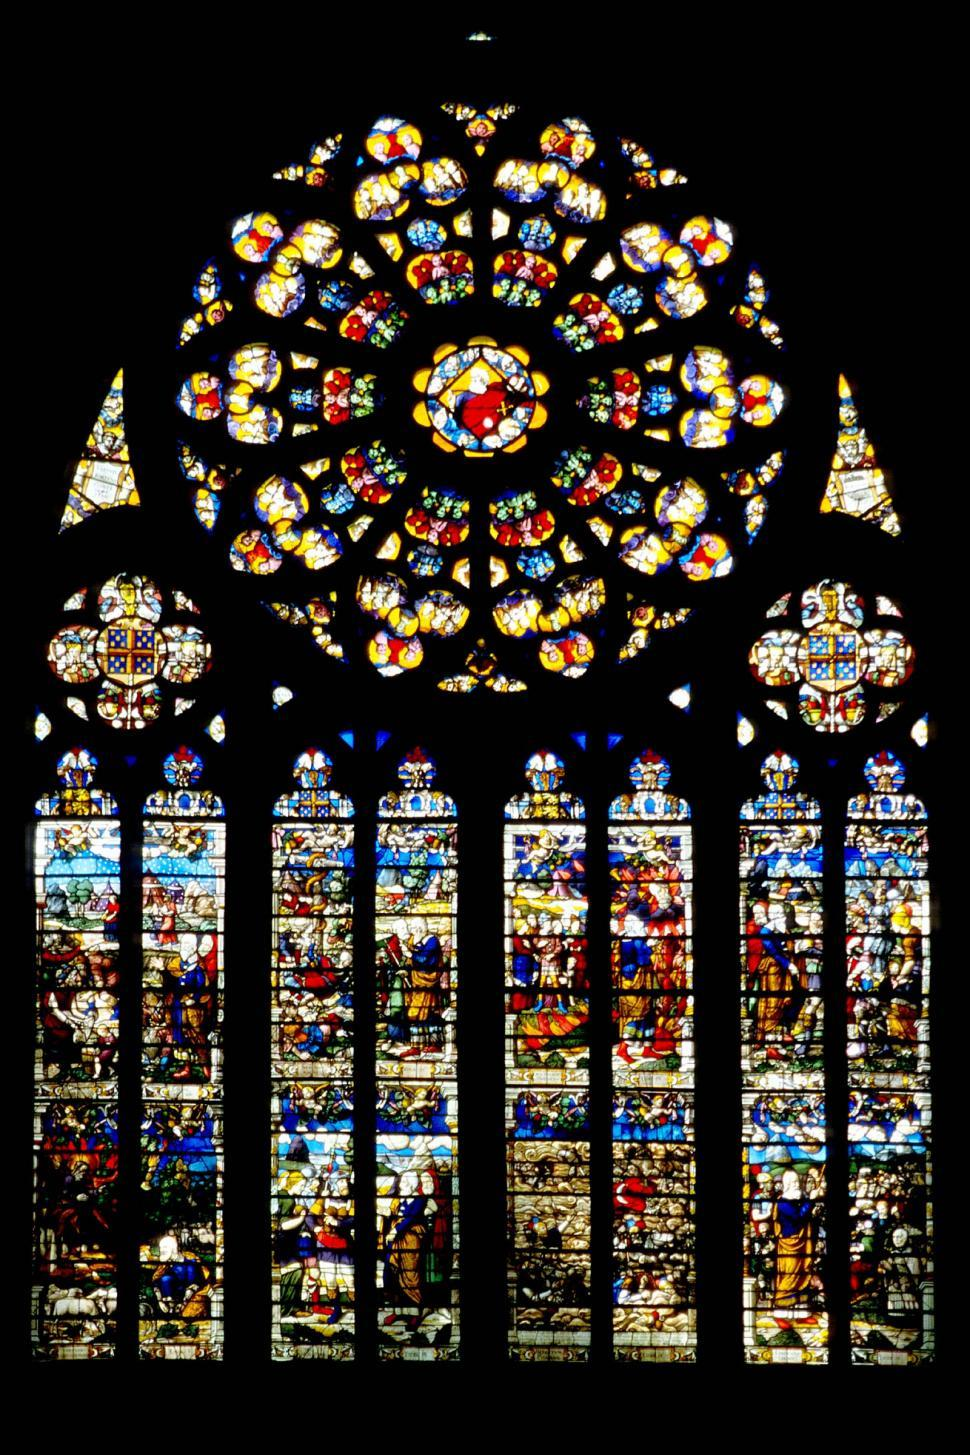 Download Free Stock Photo of france french europe european stained glass windows cathedral church religious colorful illuminated illustrations rosette panes panels colored mosaic